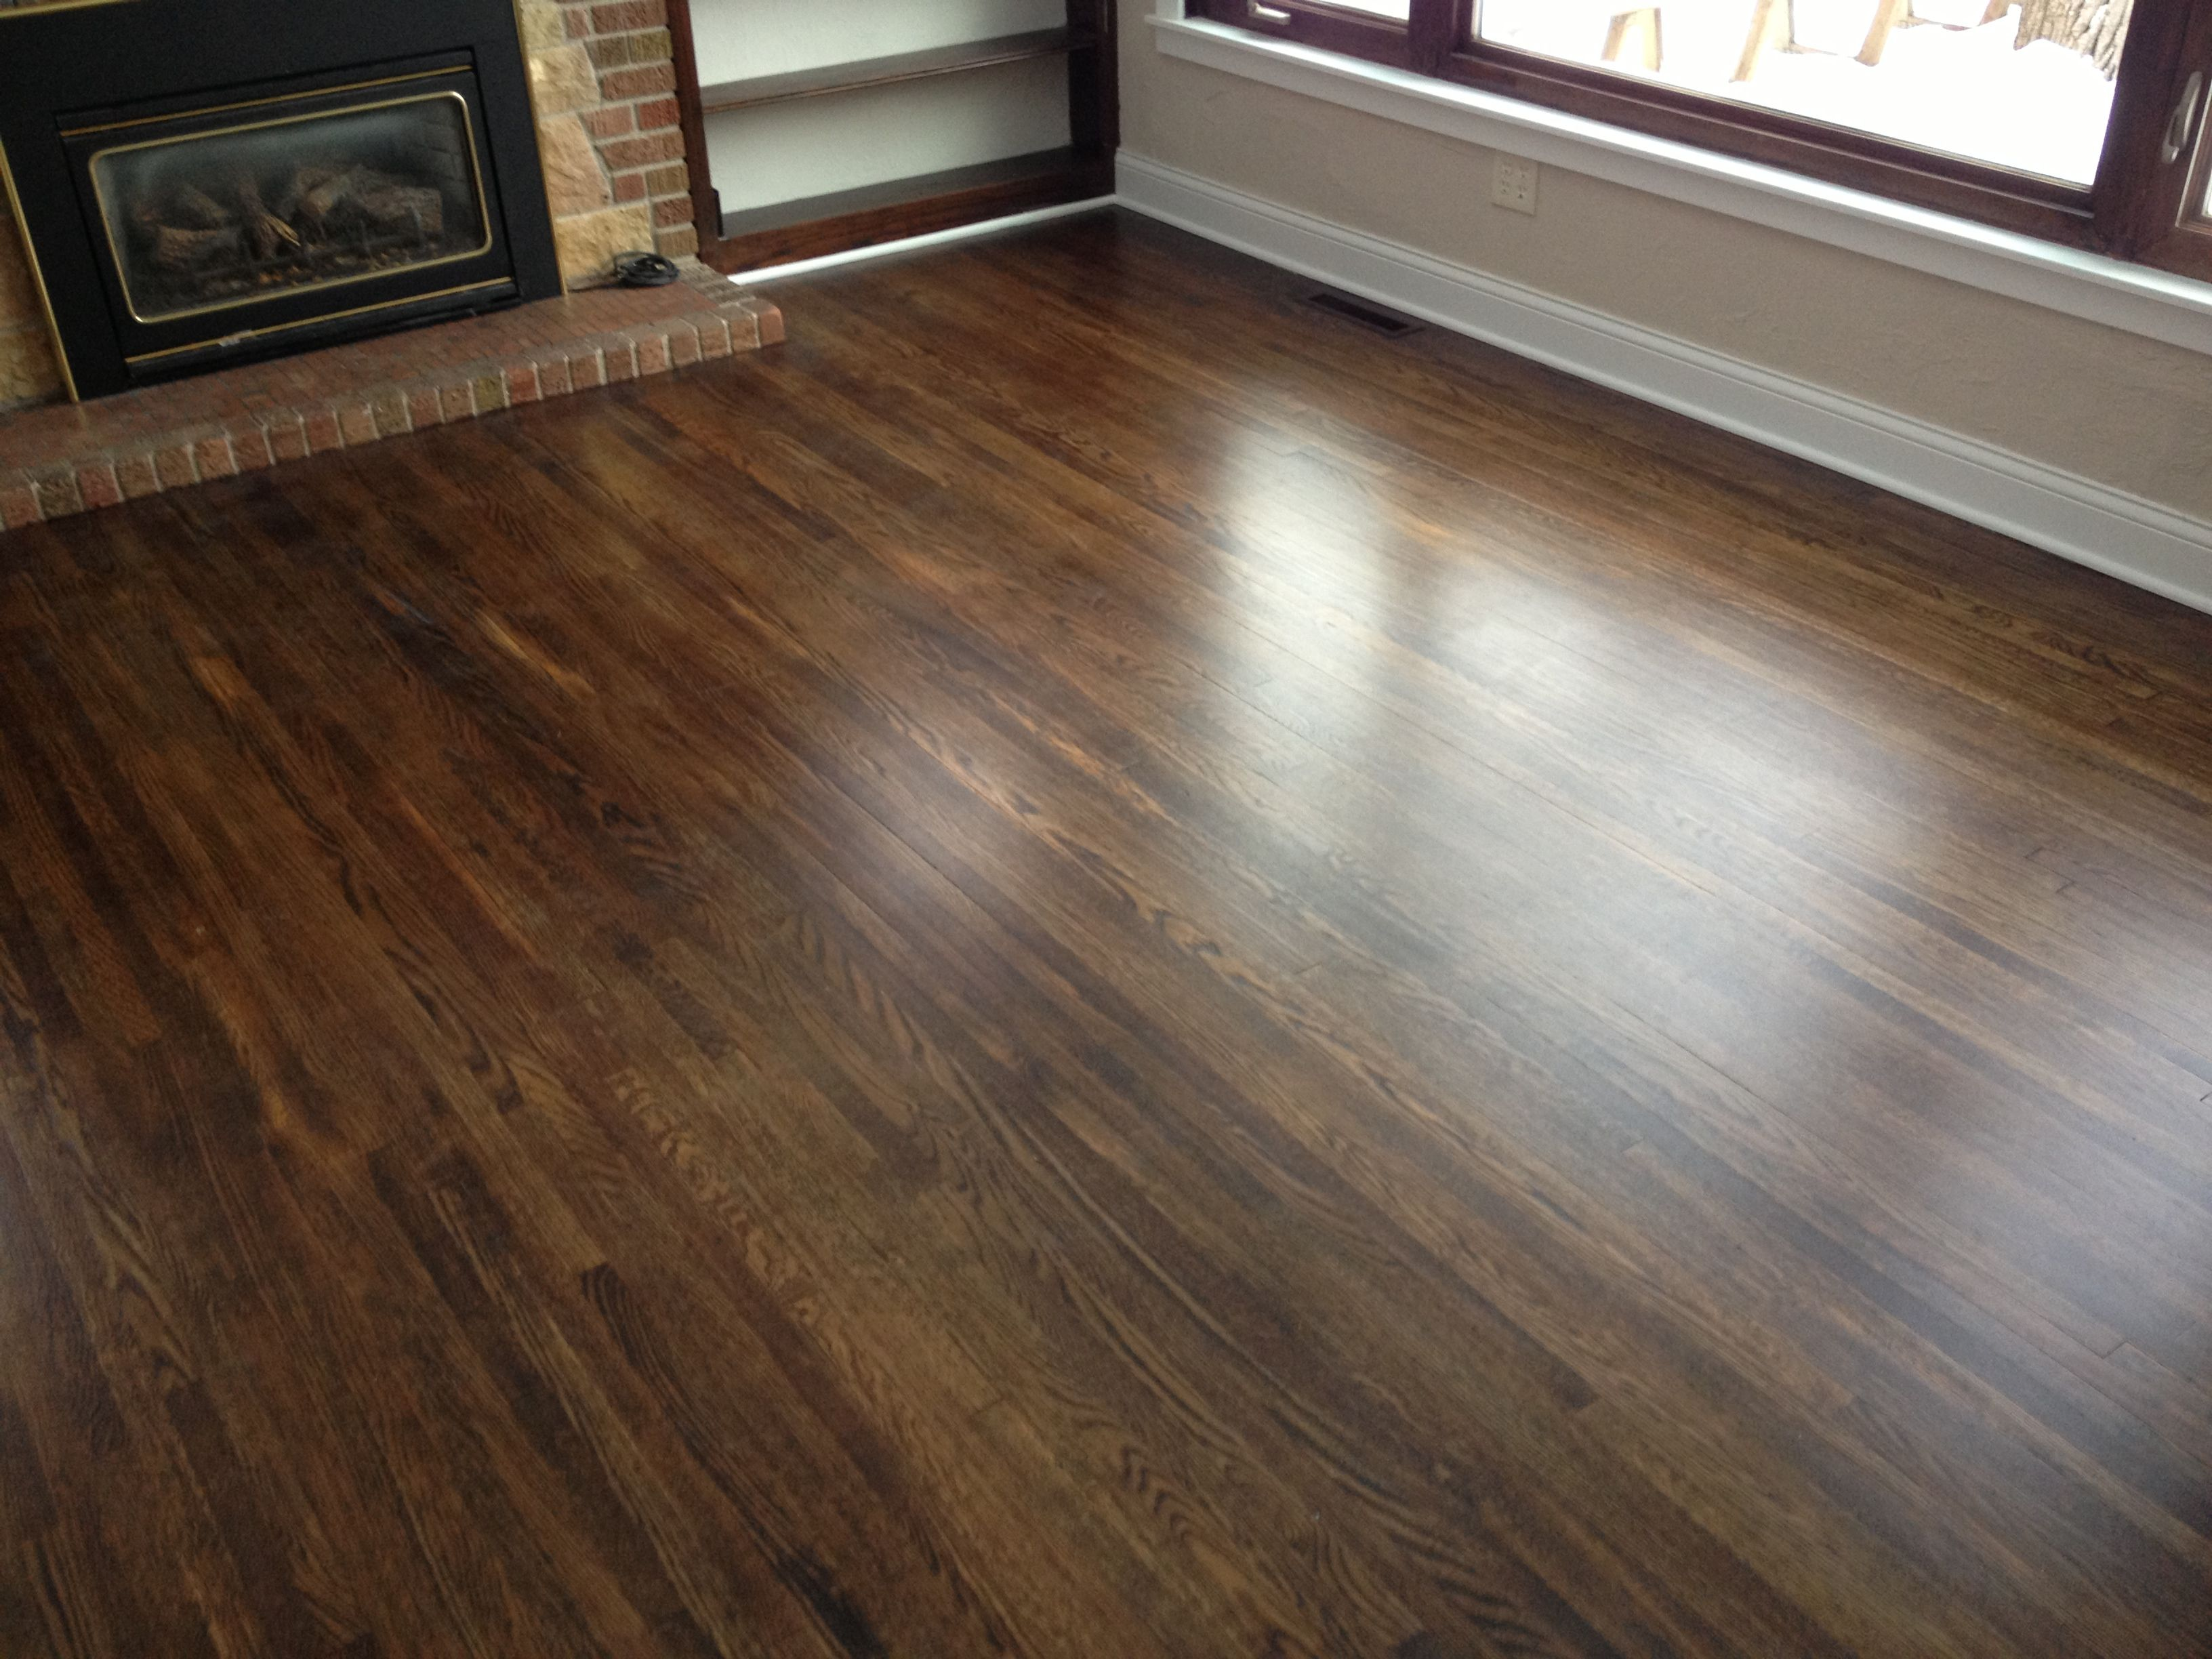 Staining Oak Floors Dark | Shapeyourminds.com